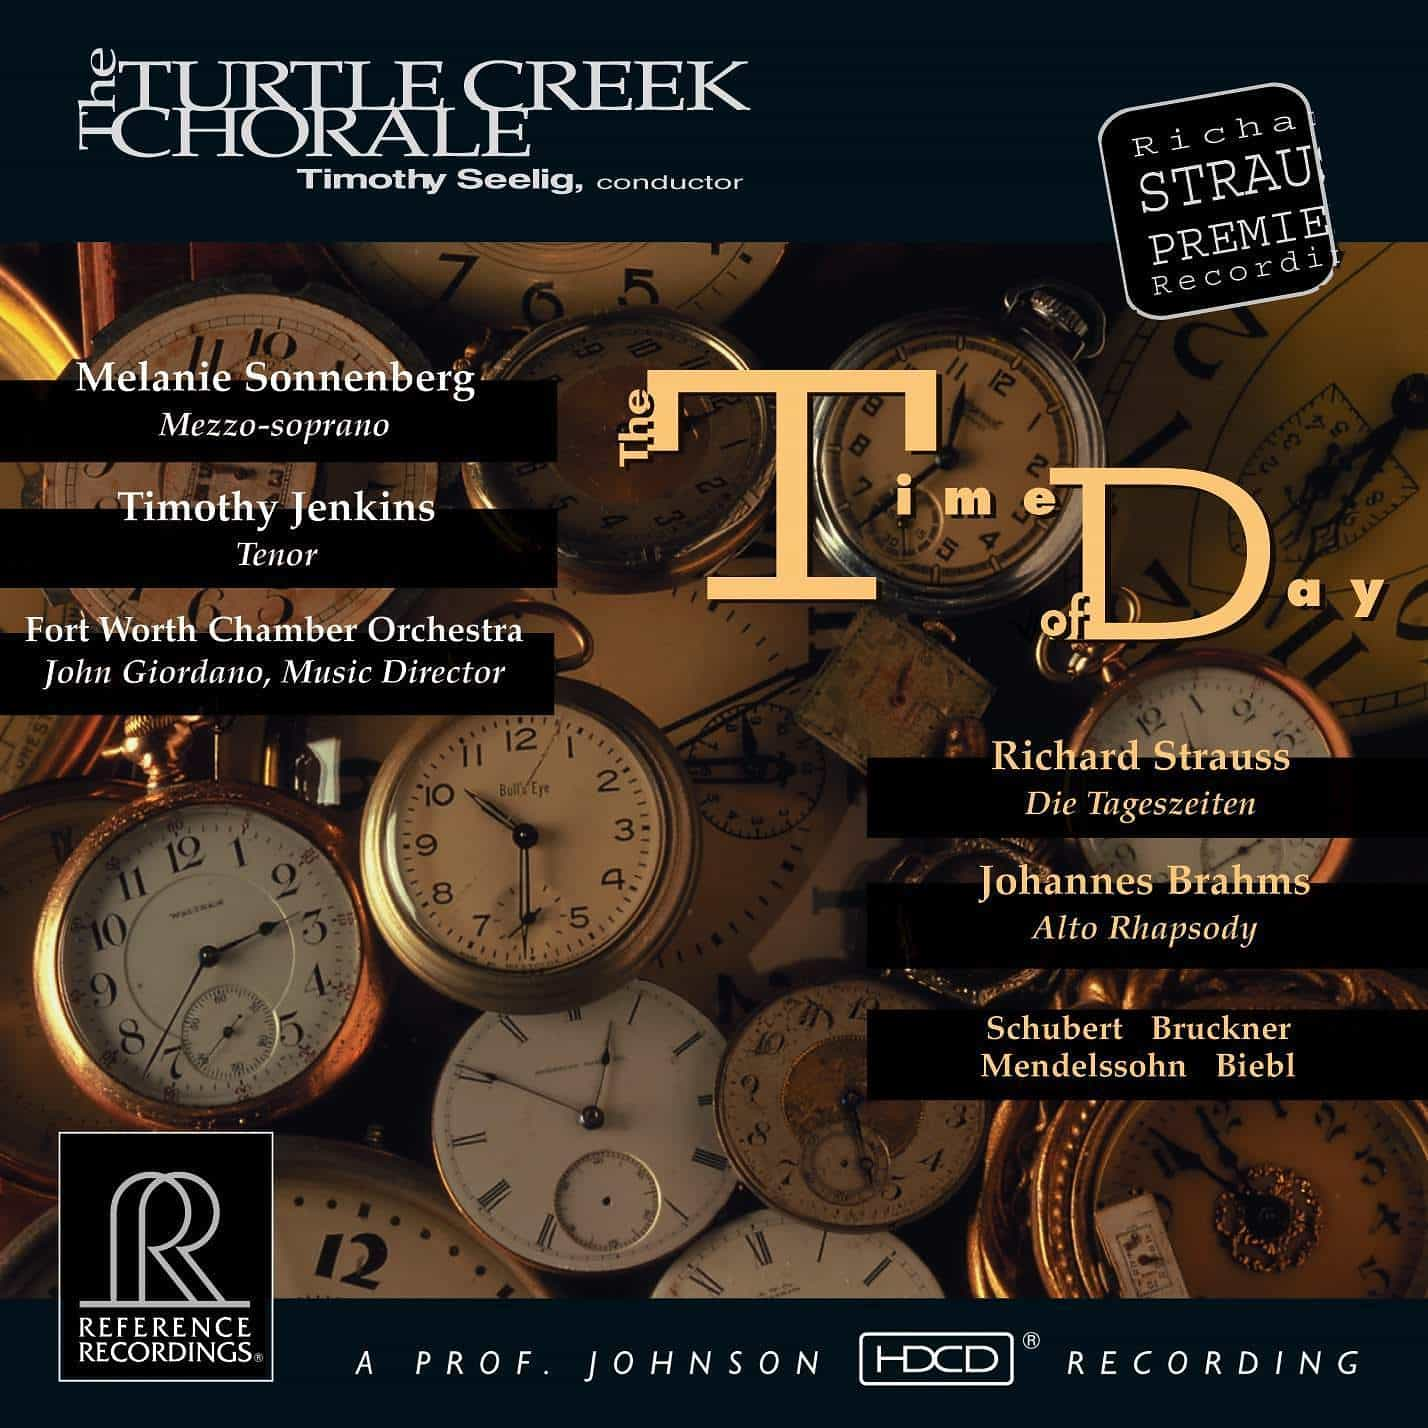 The Times of Day | Turtle Creek Chorale